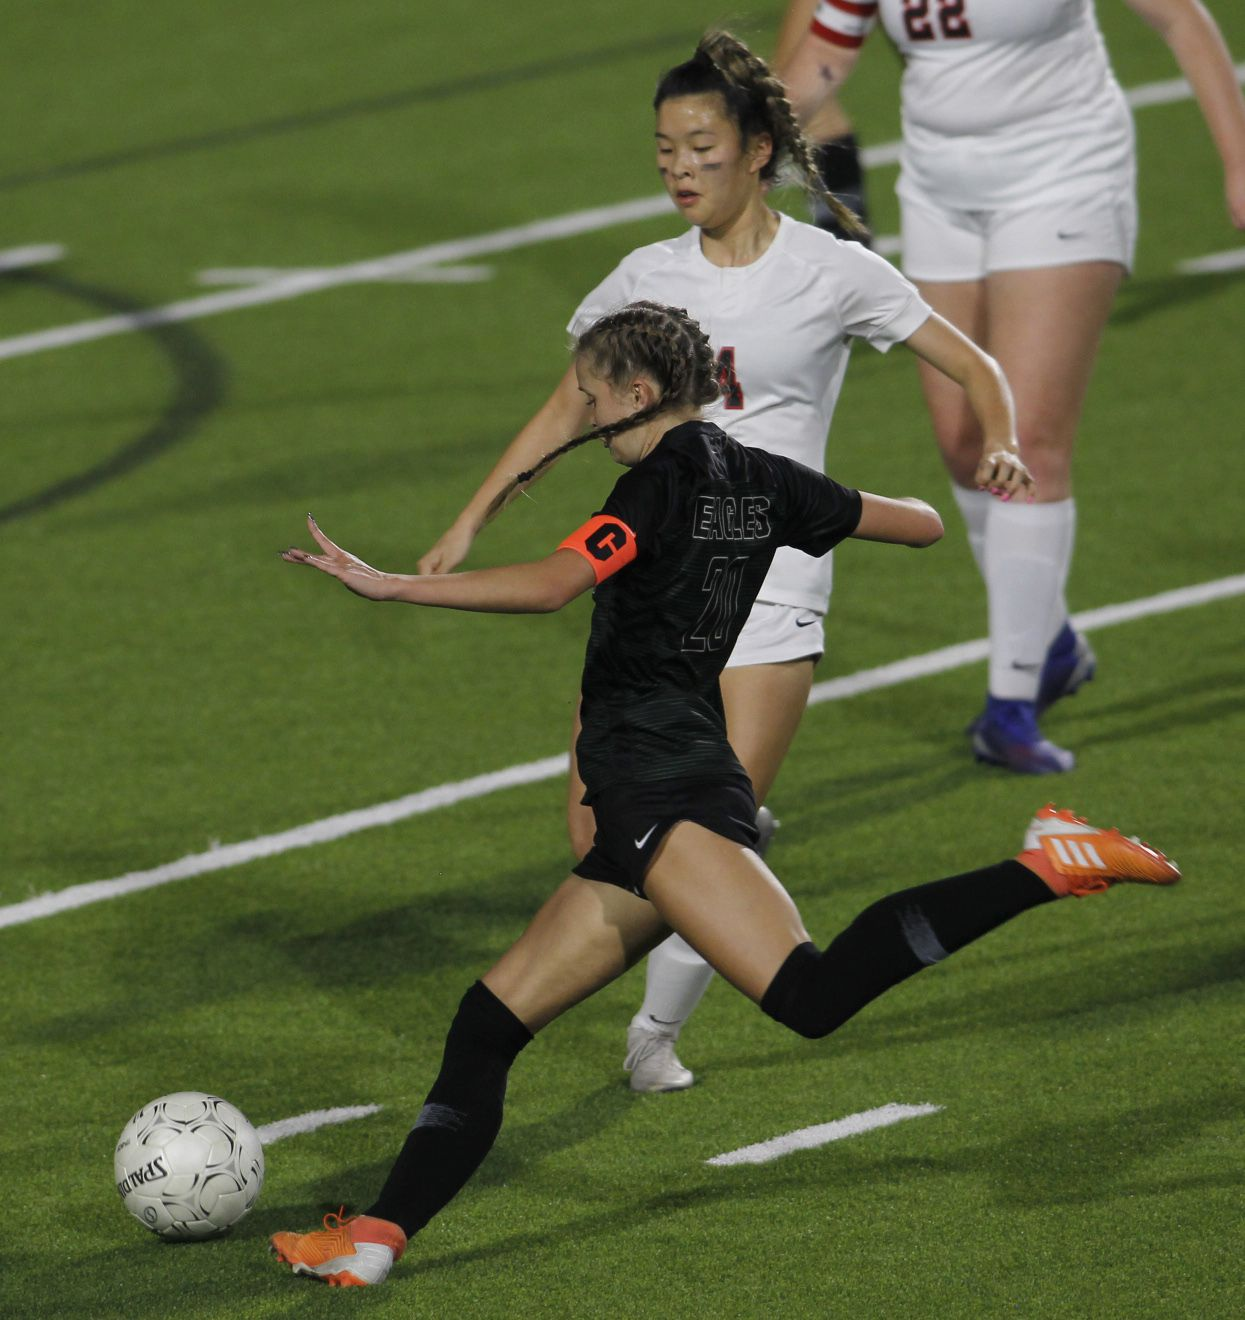 Prosper's Reaganne Crane (20) prepares to fire a shot on goal as Coppell's Michelle Pak (4) moves in defensively during first half action. The two teams played their Class 6A bi-district girls soccer playoff game at McKinney ISD Stadium in McKinney on March 26, 2021. (Steve Hamm/ Special Contributor)